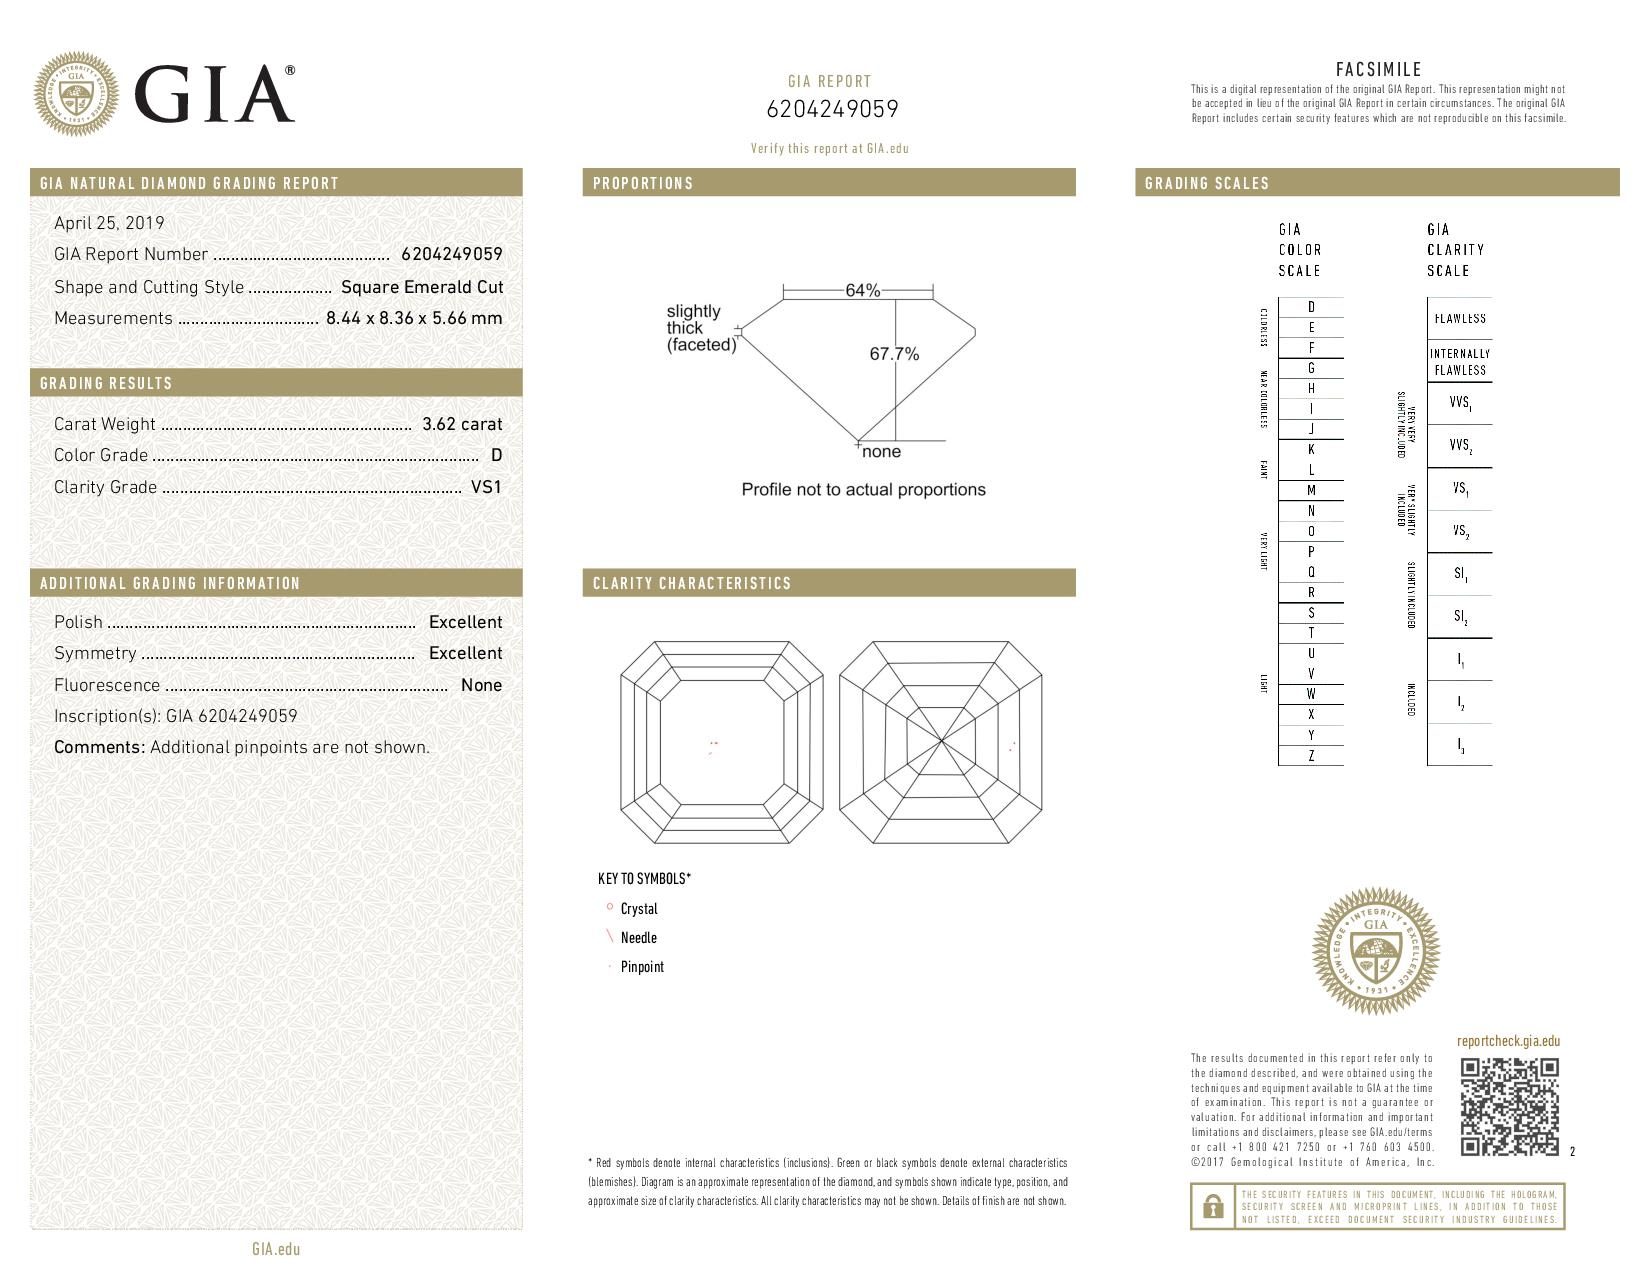 This is a 3.62 carat asscher shape, D color, VS1 clarity natural diamond accompanied by a GIA grading report.